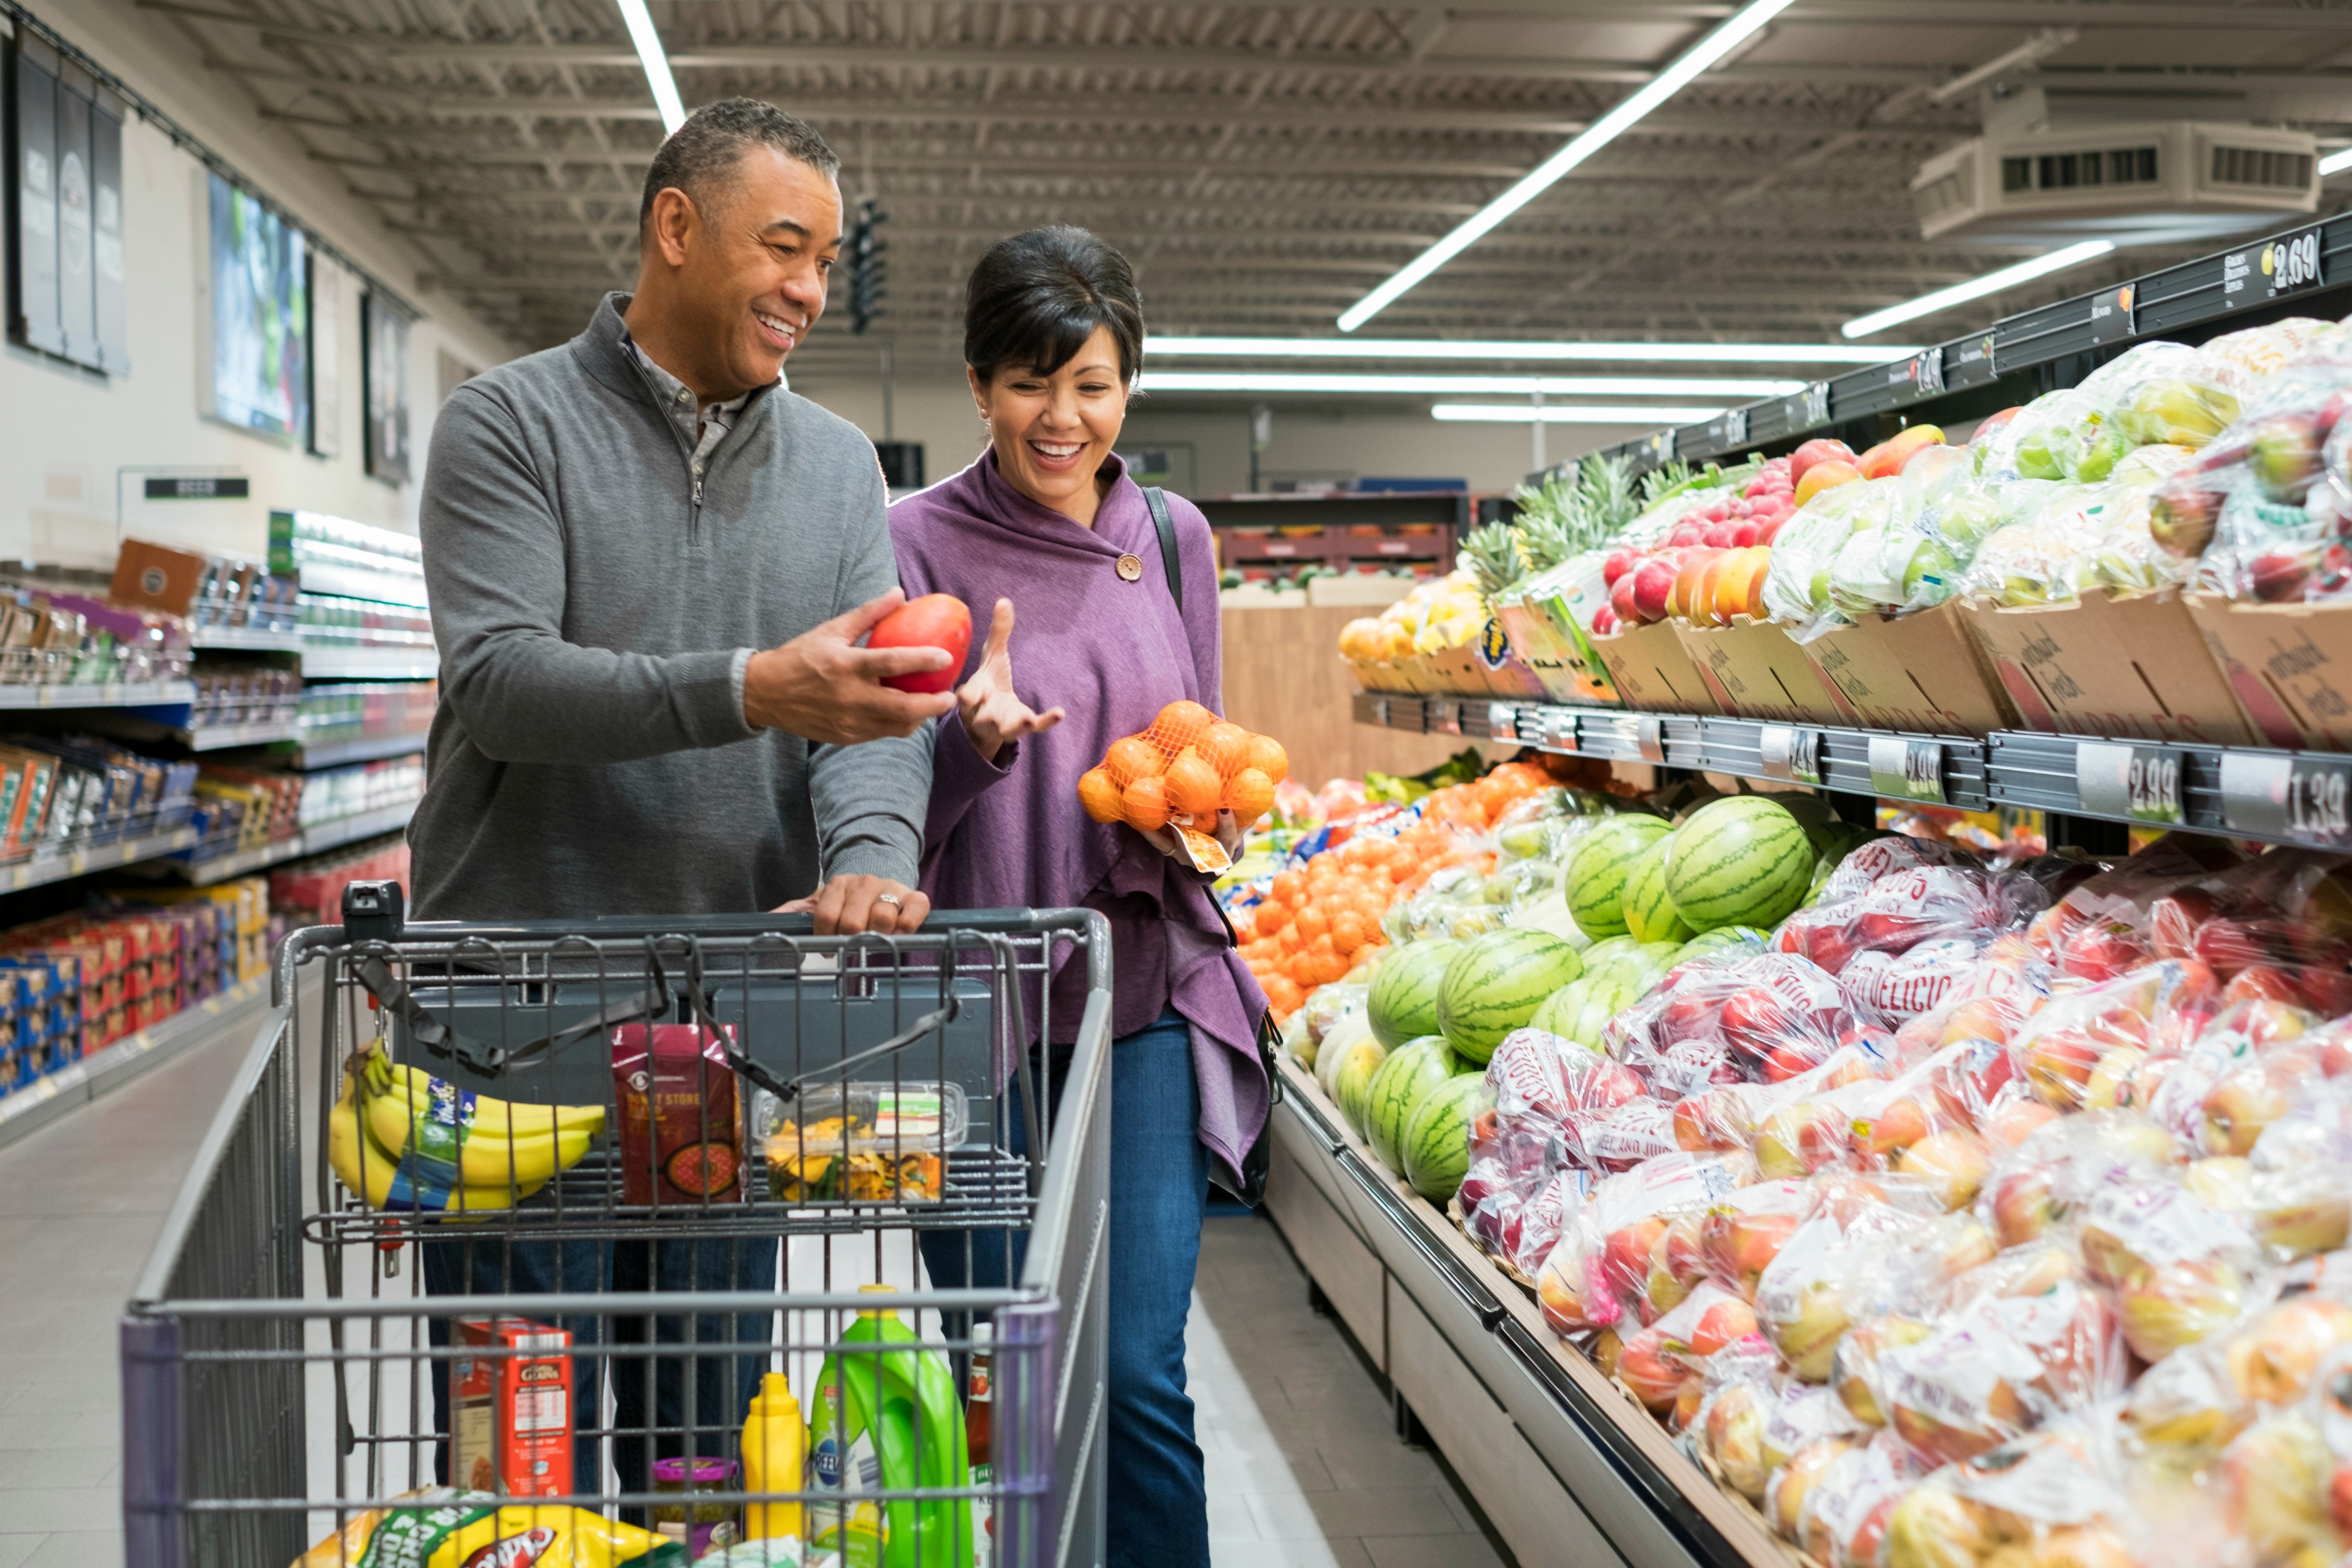 How to save even more at aldi aldiproduceshoppers fandeluxe Choice Image